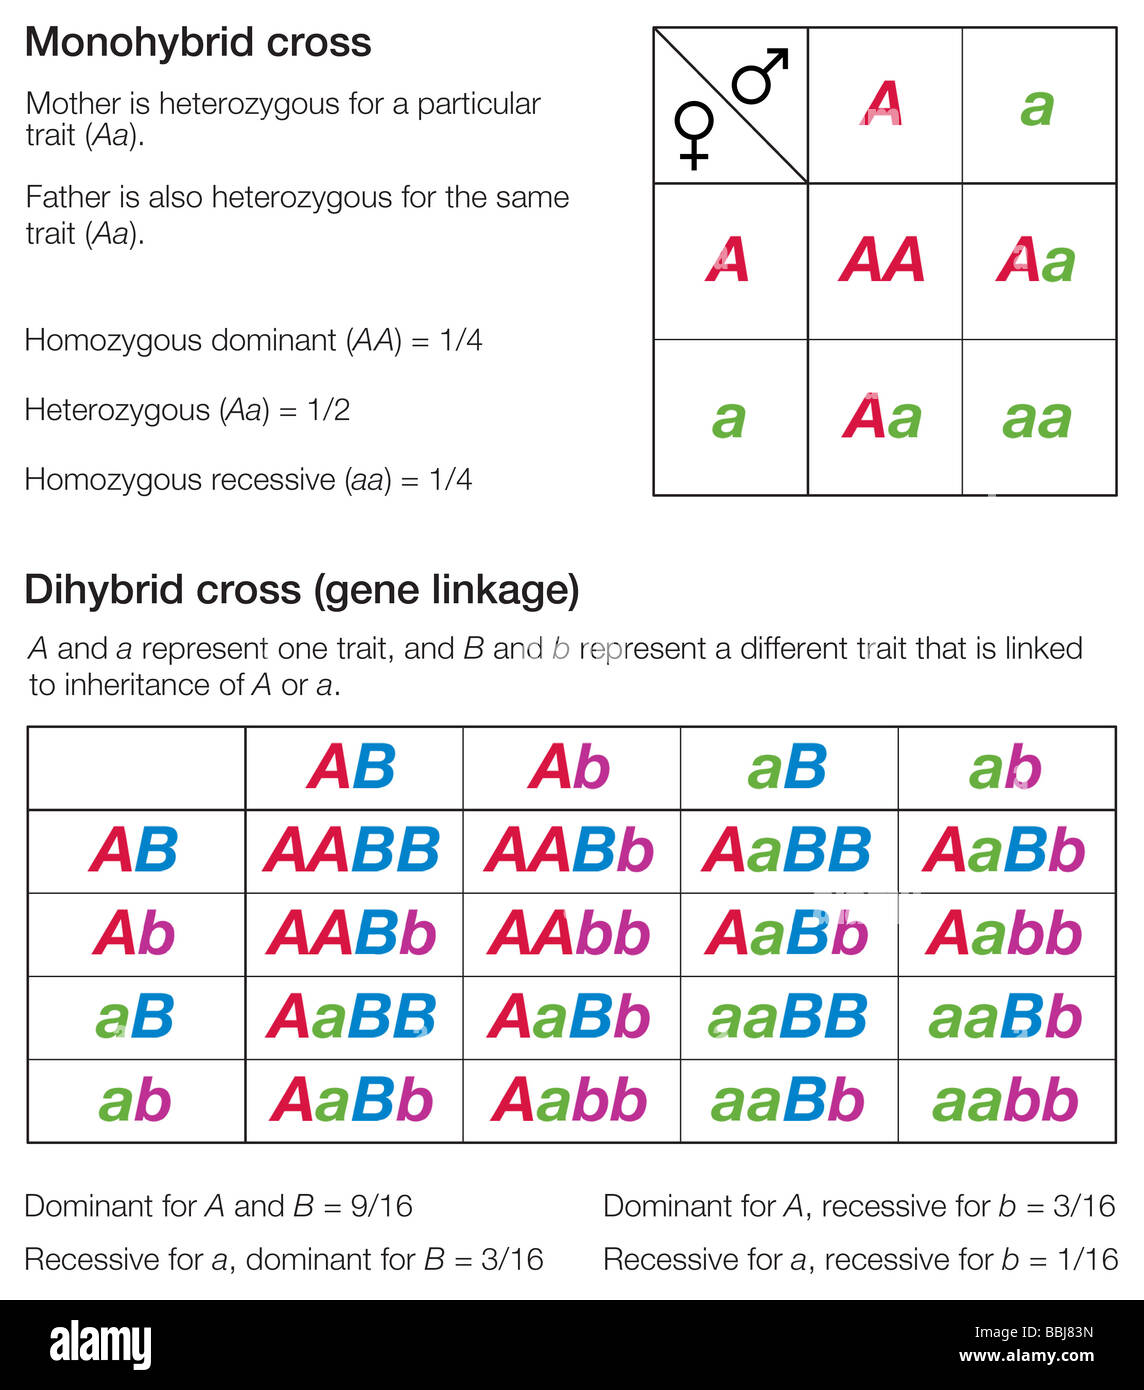 Punnett squares of a monohybrid and a dihybrid cross, used ...